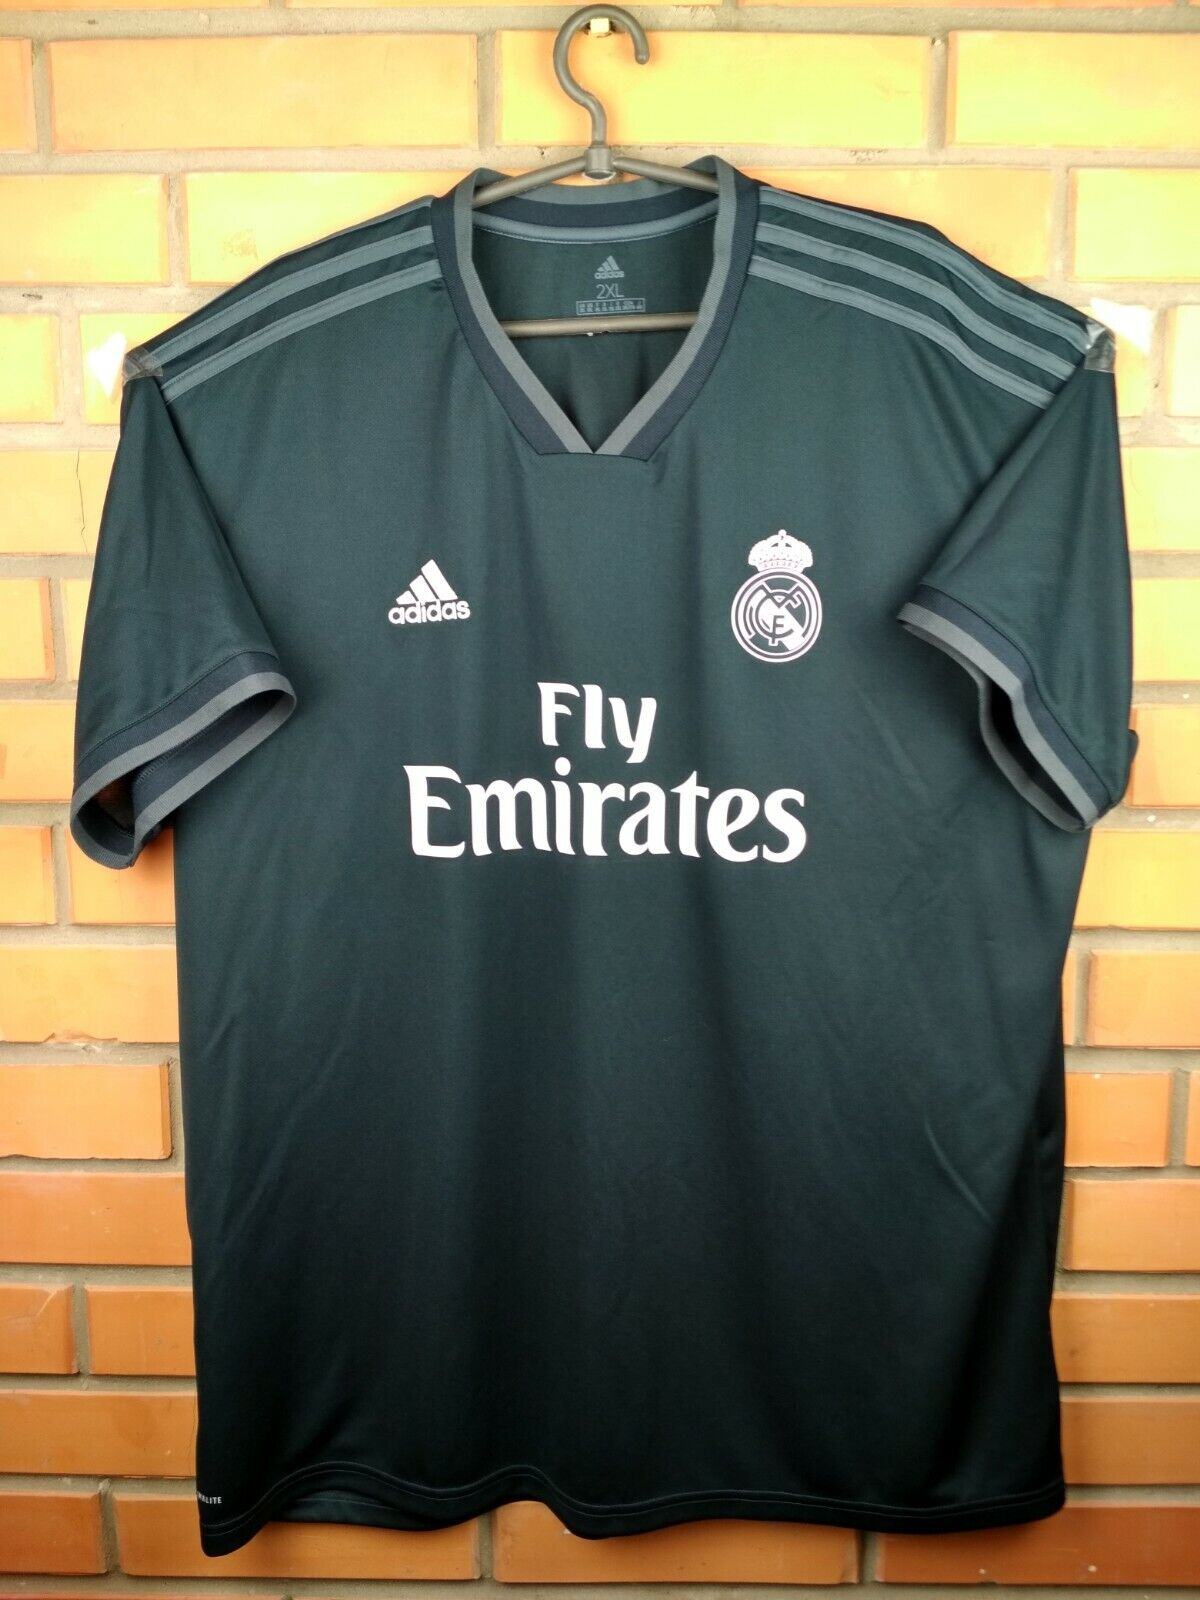 a676f986180 Real Madrid jersey 2XL 2018 2019 third shirt CG0584 soccer football Adidas